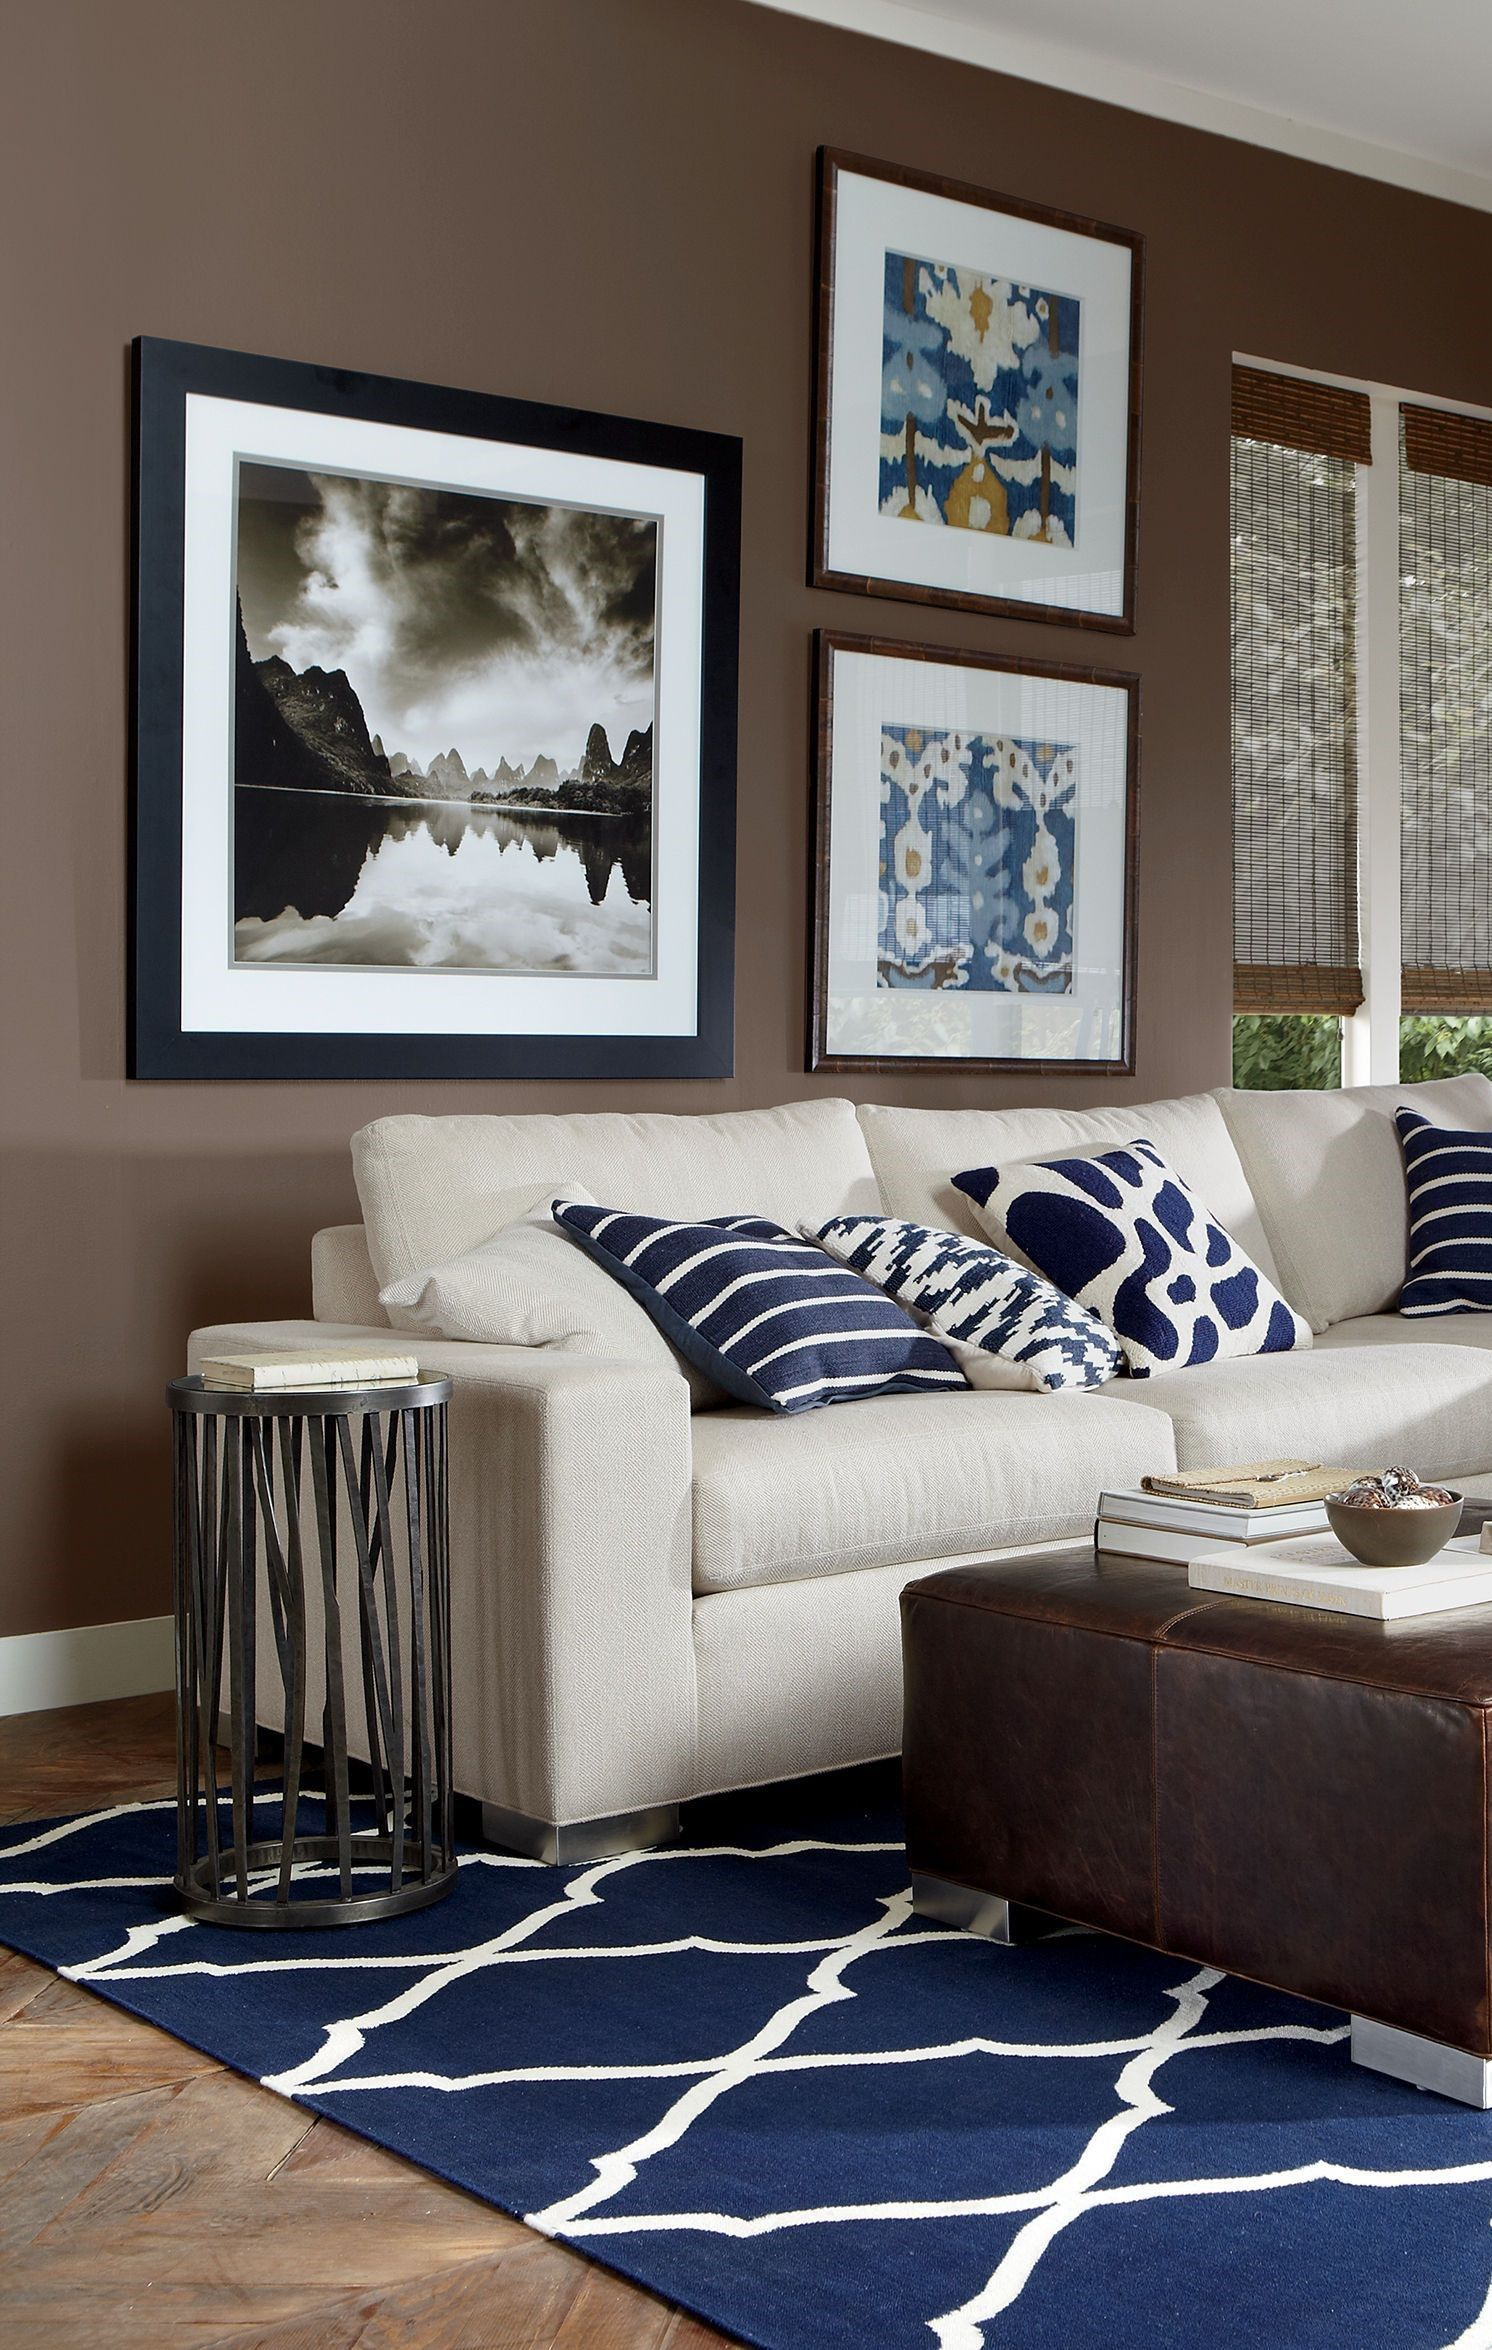 21 Most Elegant Blue And Brown Living Room Ideas You Ll Love Brown living room decor